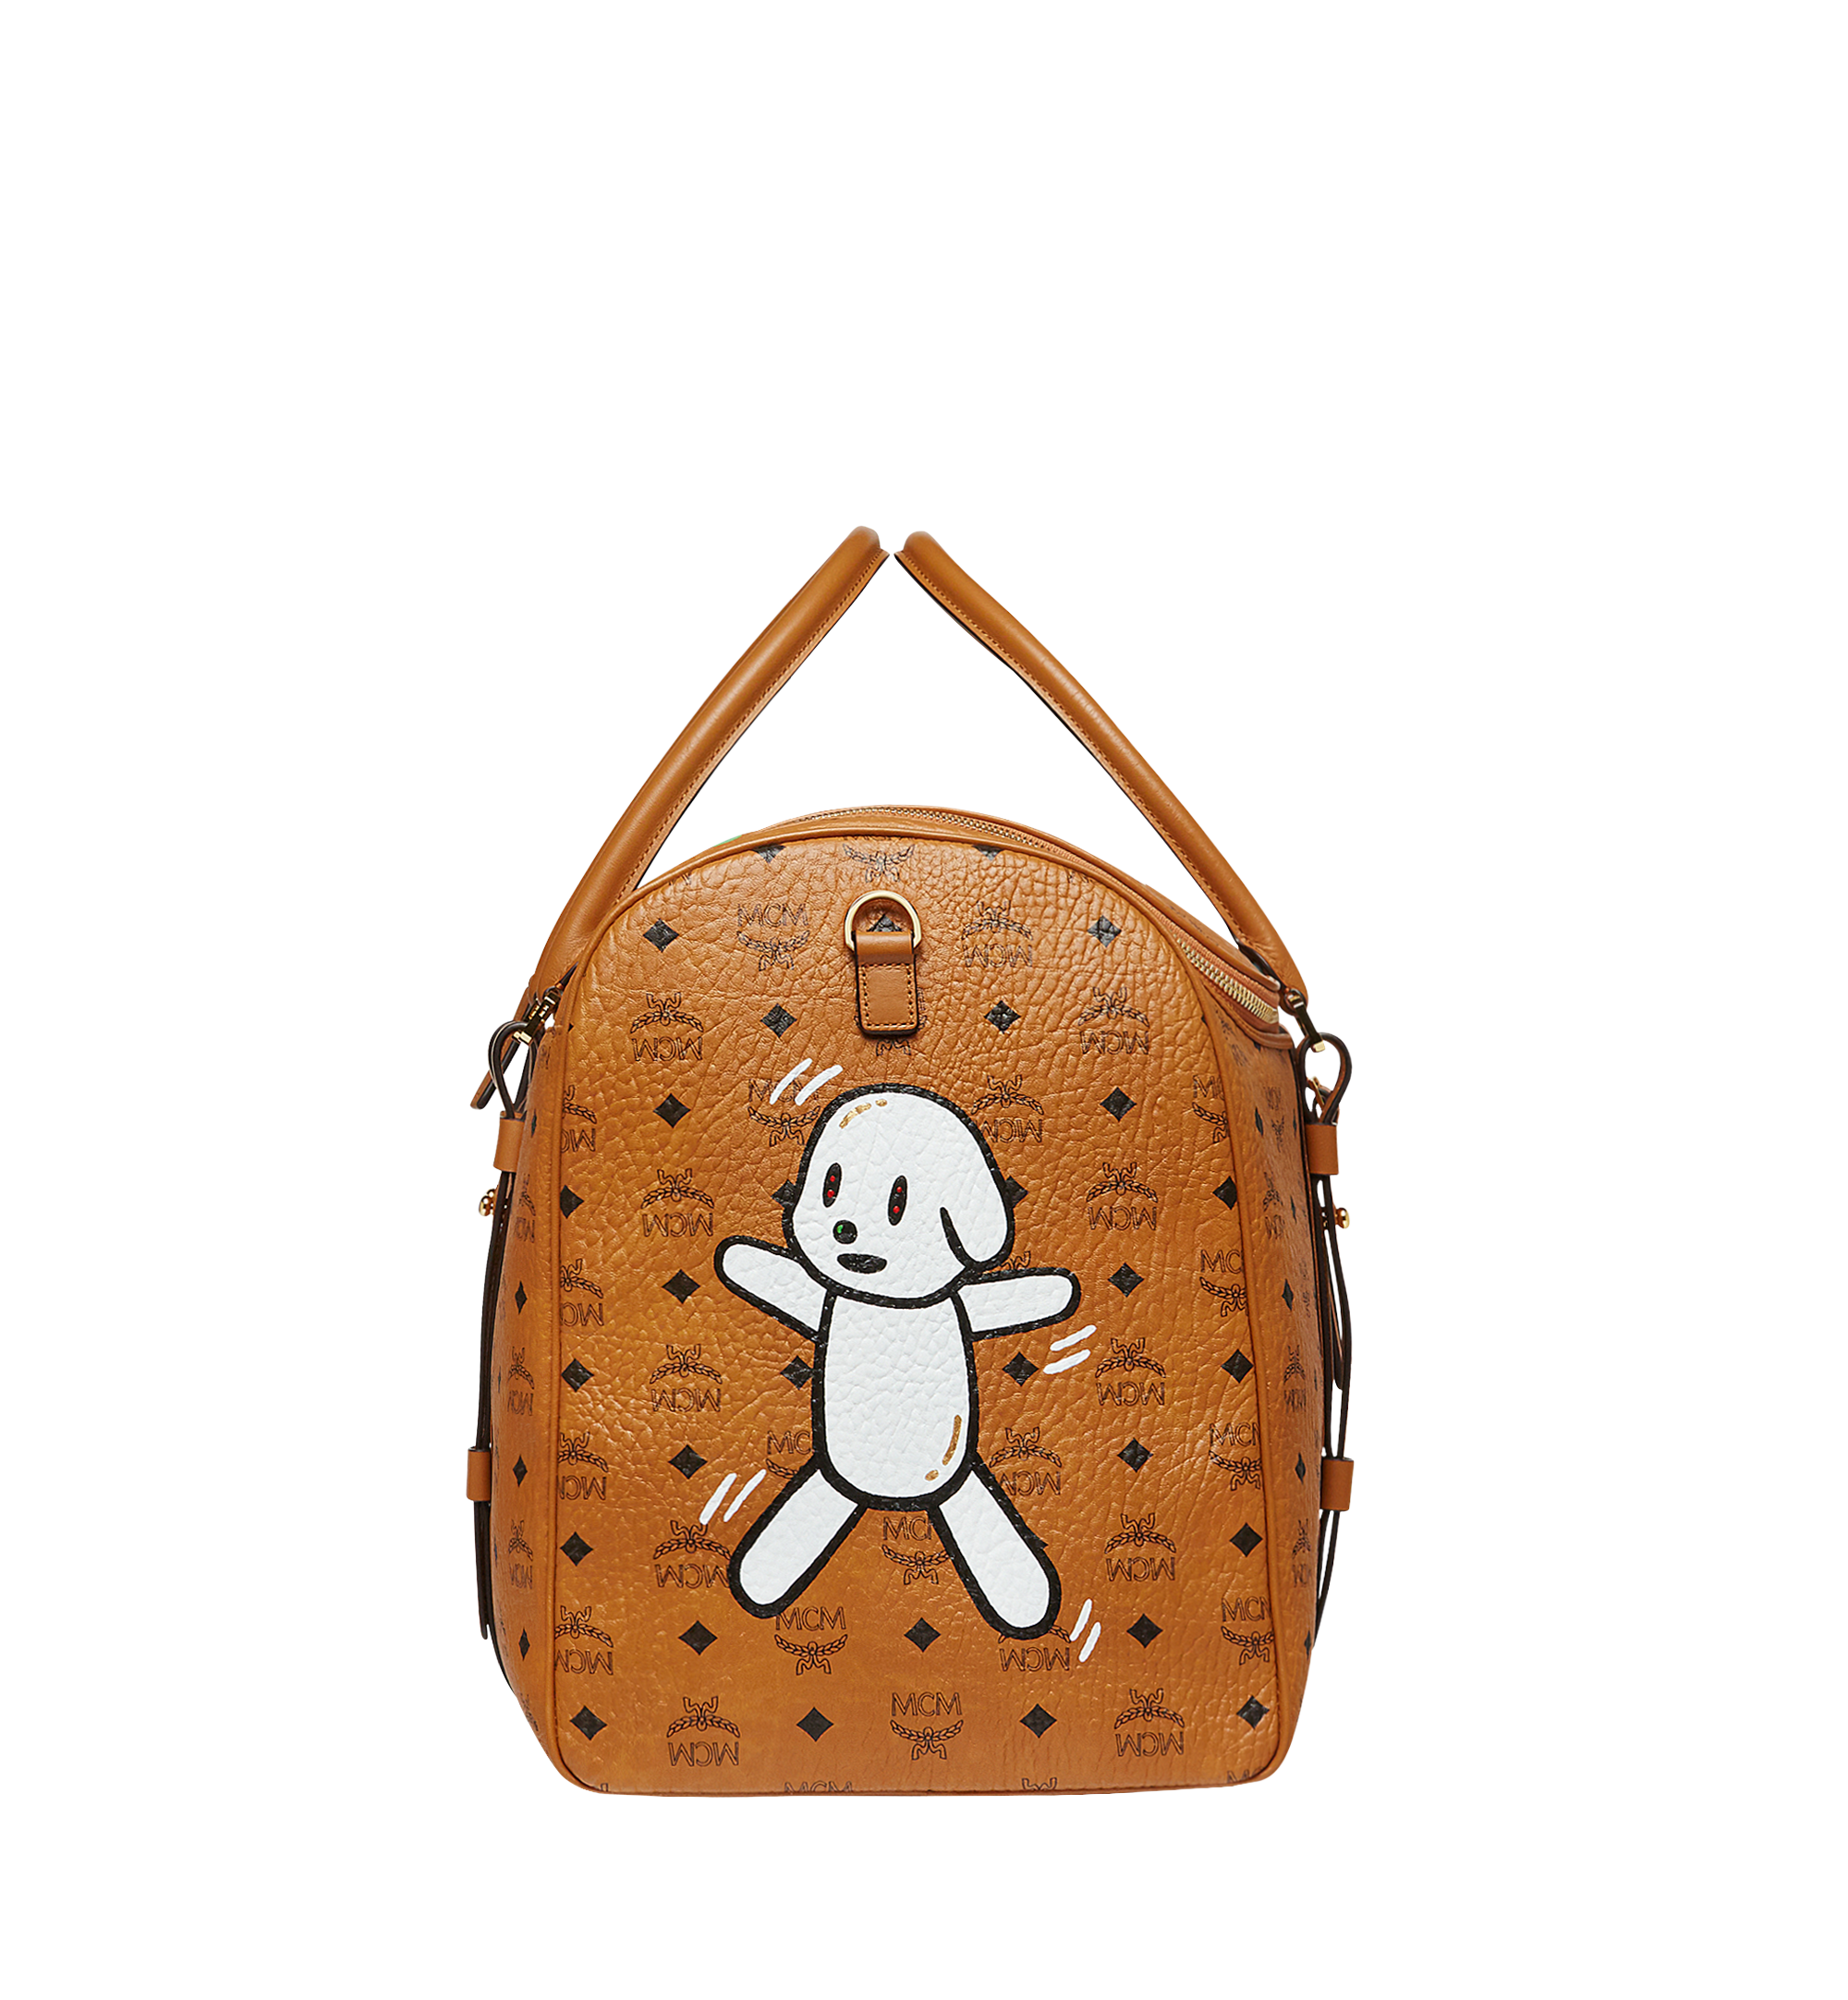 MCM_X_Eddie_Kang_Auction_Piece___Dog_Carrier_HQ_3.png